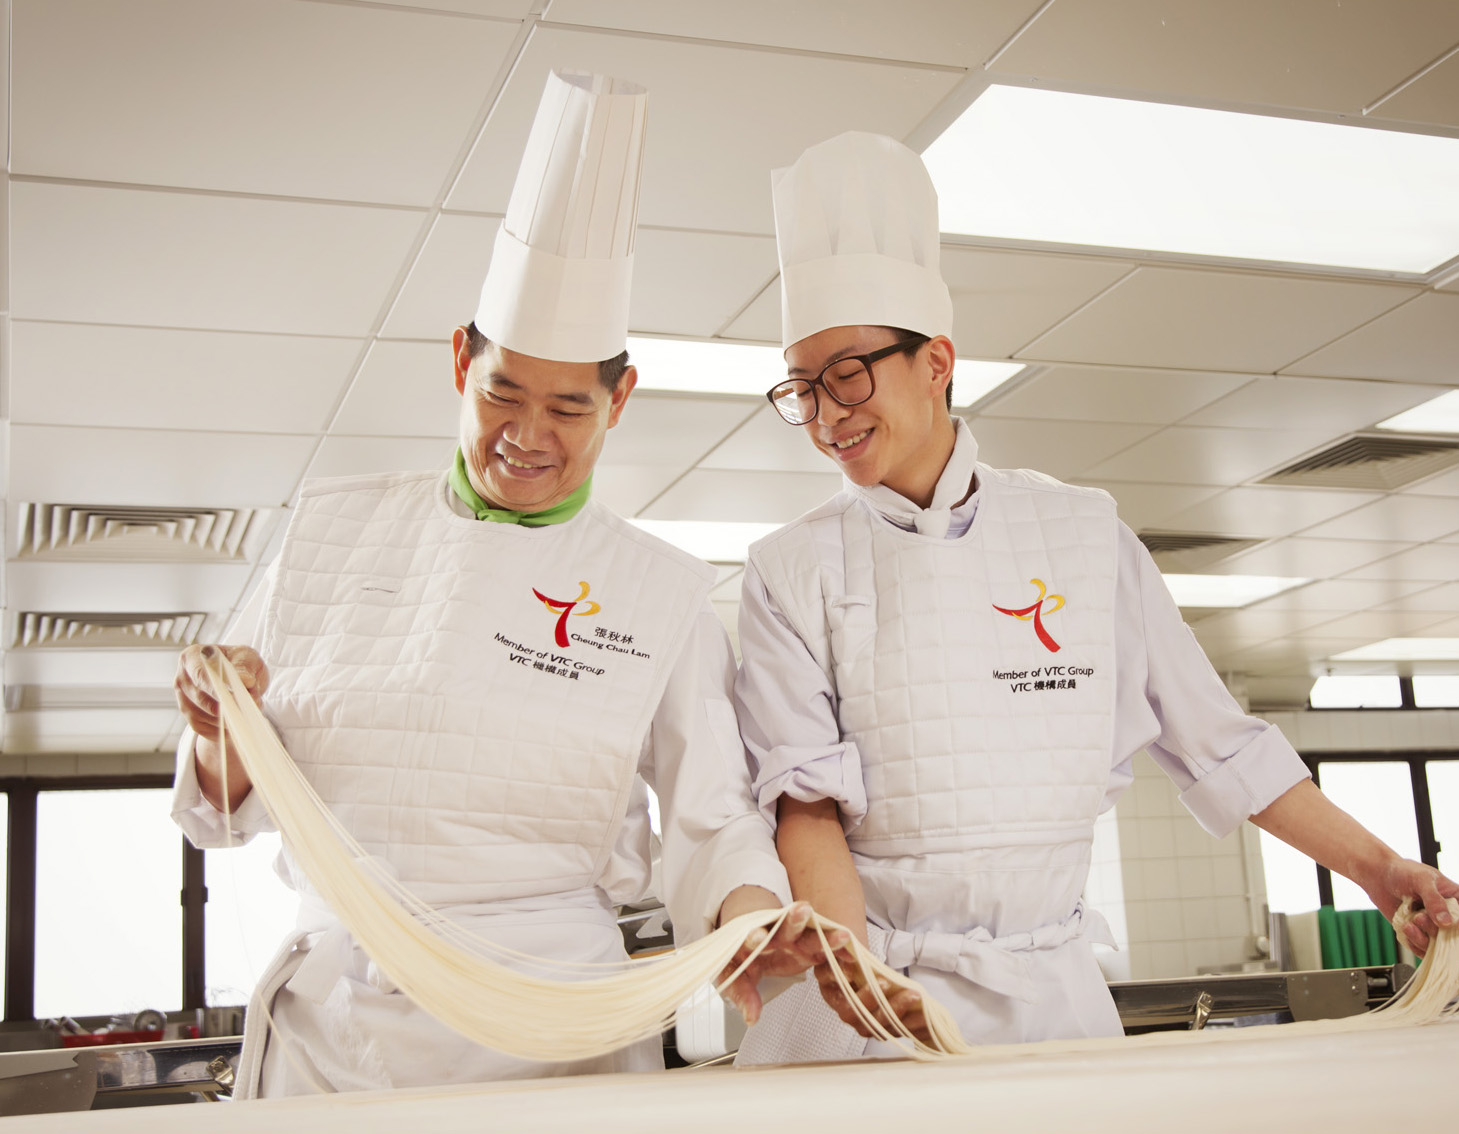 About Chinese Culinary Institute